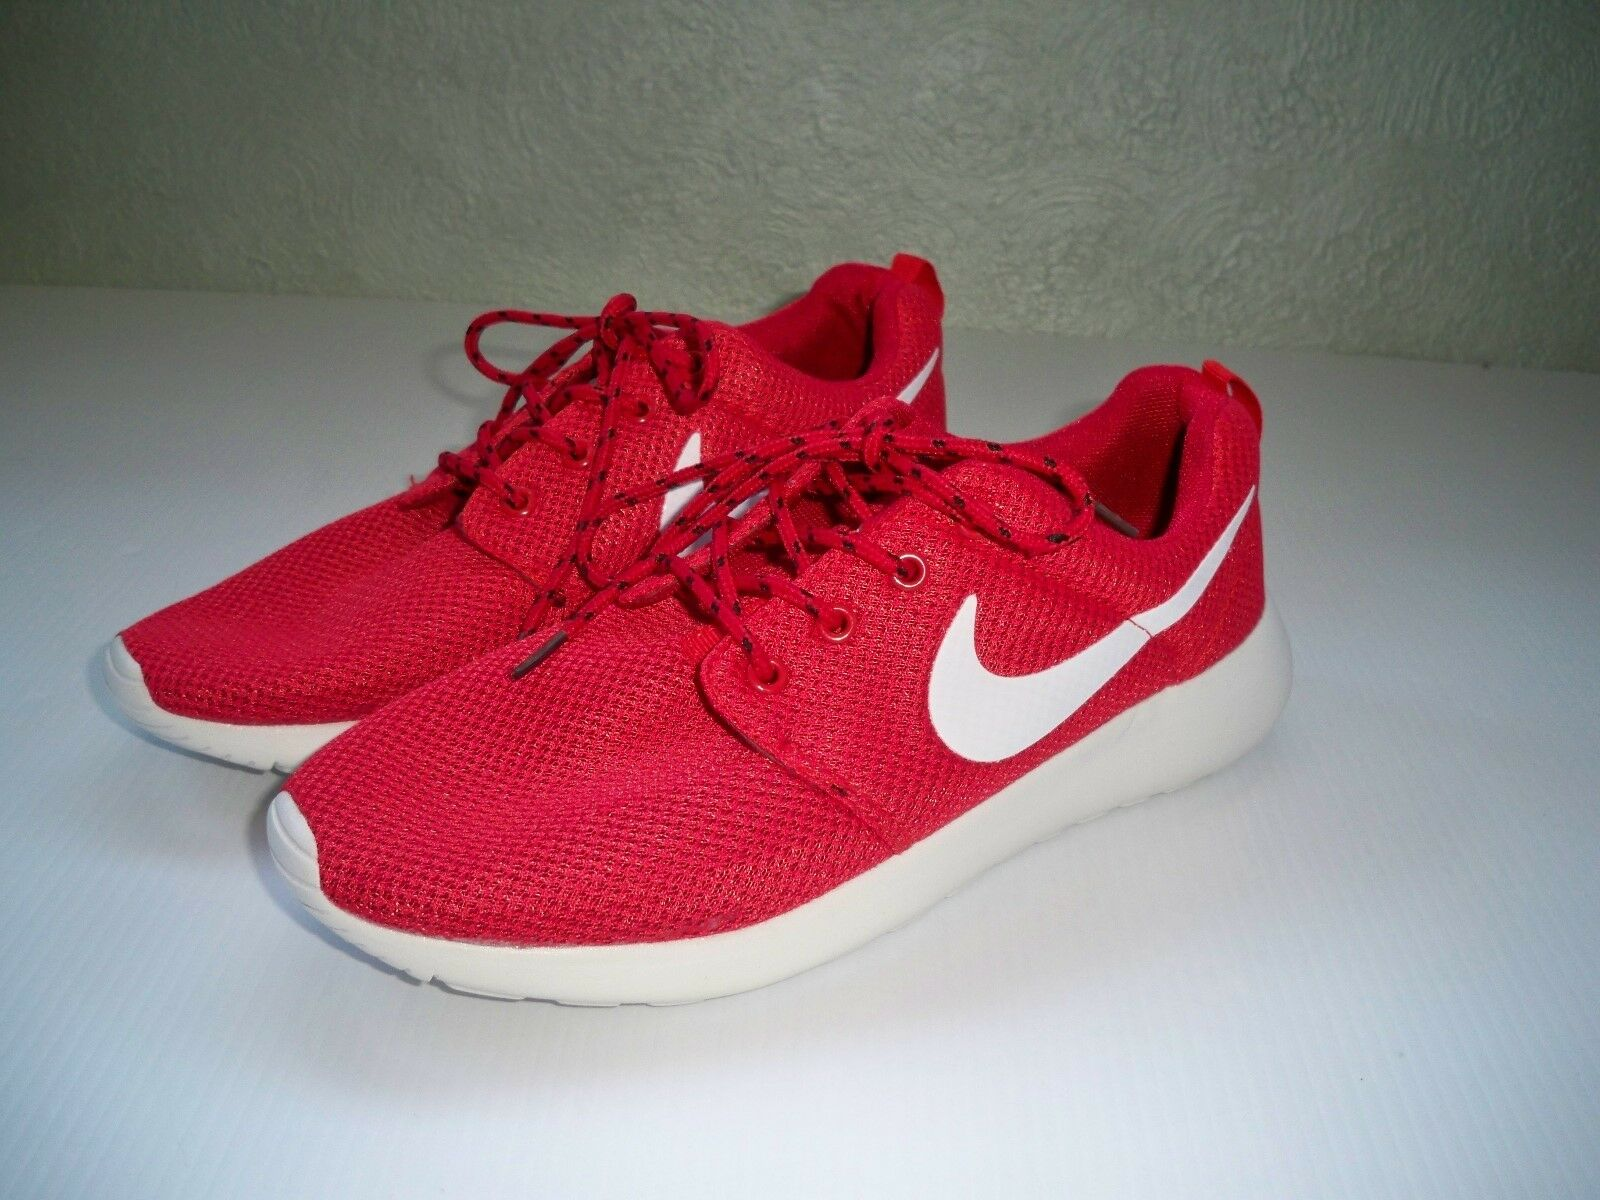 Nike Roshe running shoes 2018 red white logo mens SZ 8.5 EXCELLENT